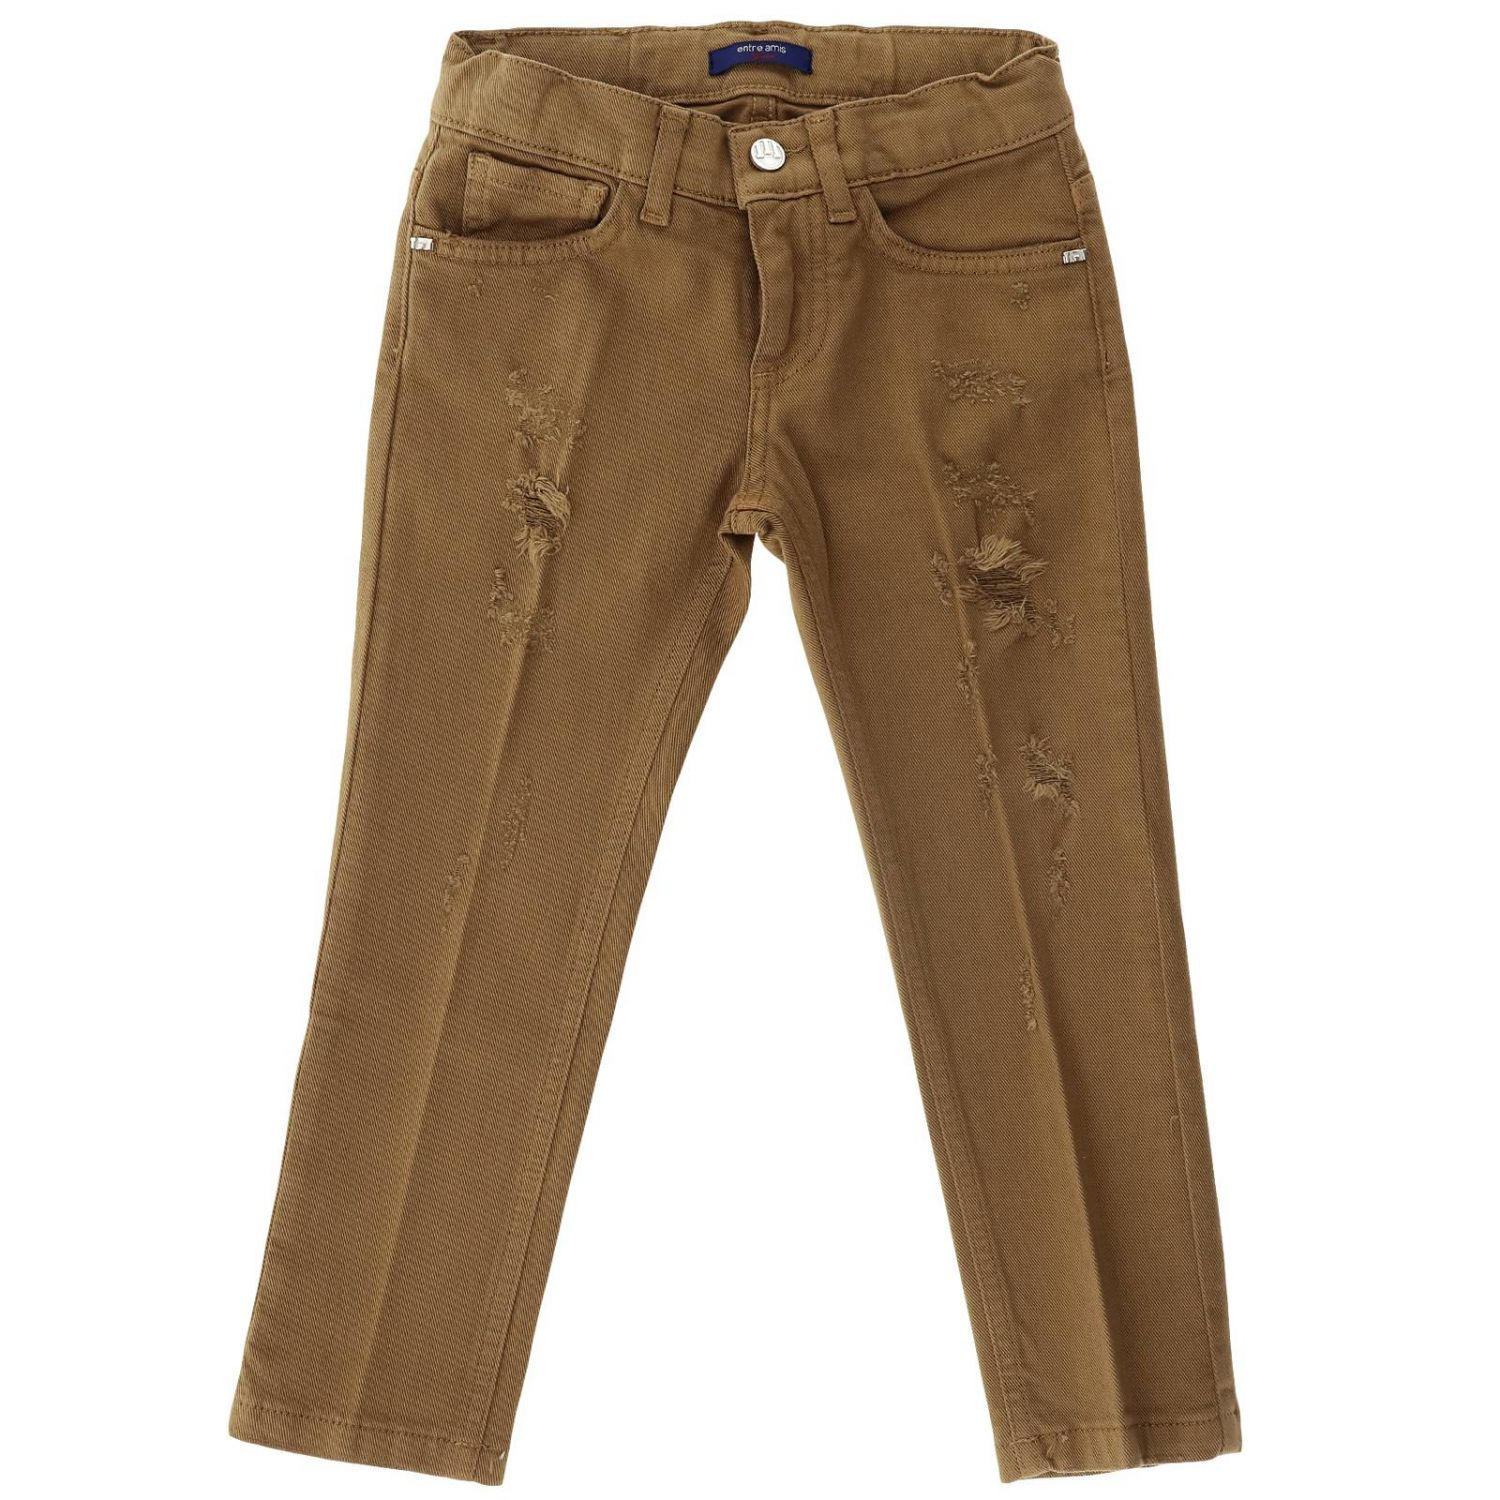 Trousers kids Entre Amis tobacco 1